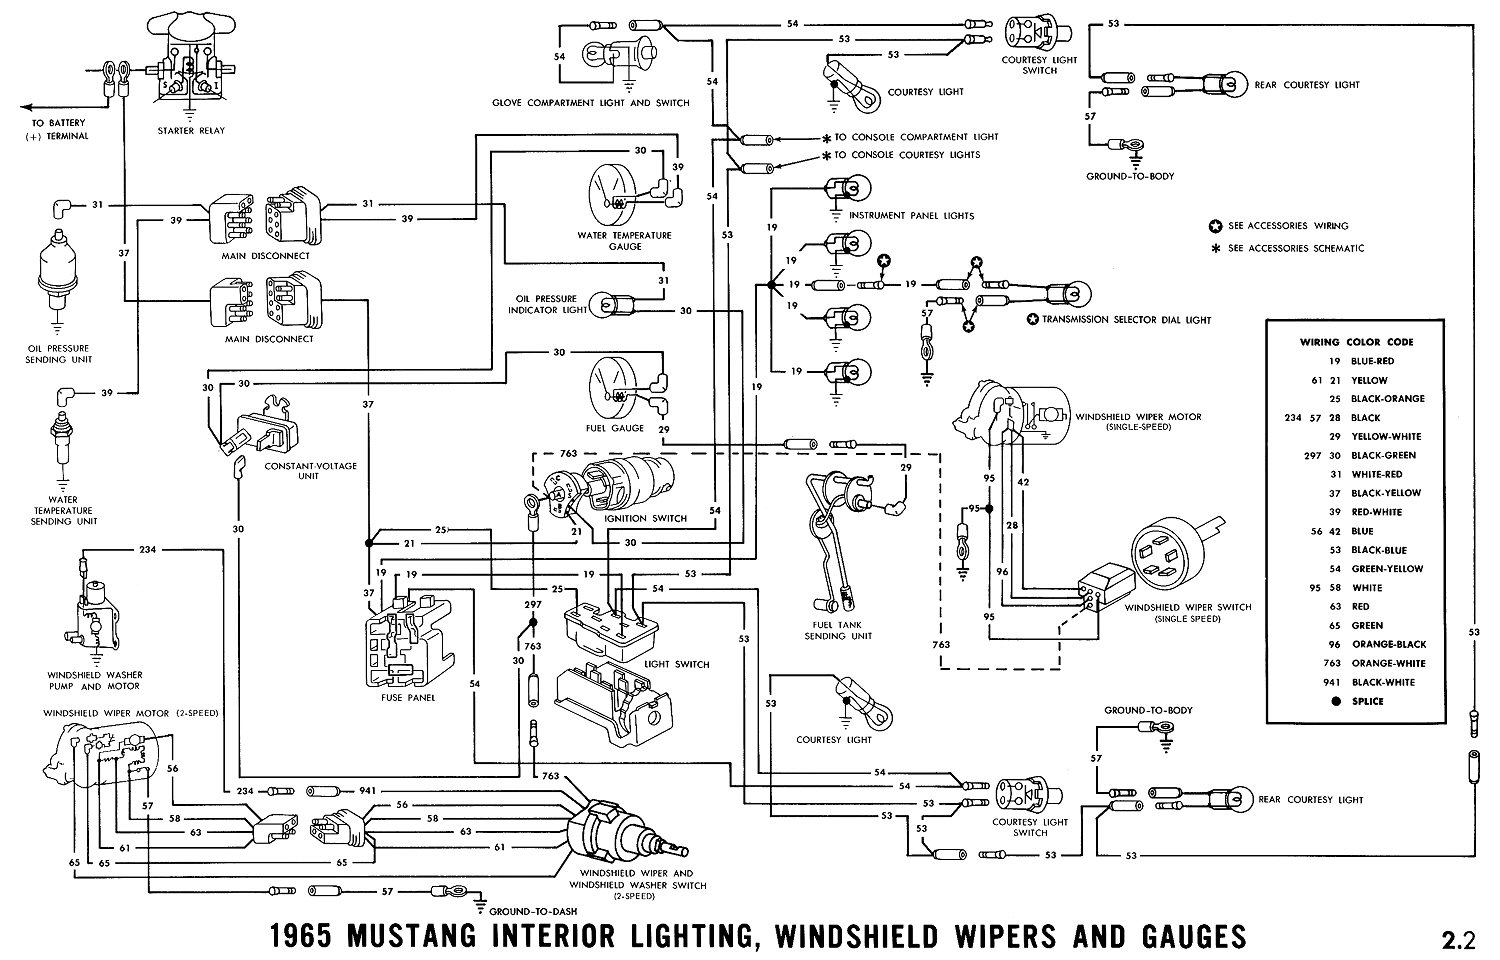 hight resolution of 1965 mustang wiring diagrams average joe restoration 1964 mustang wiring diagram for headlights